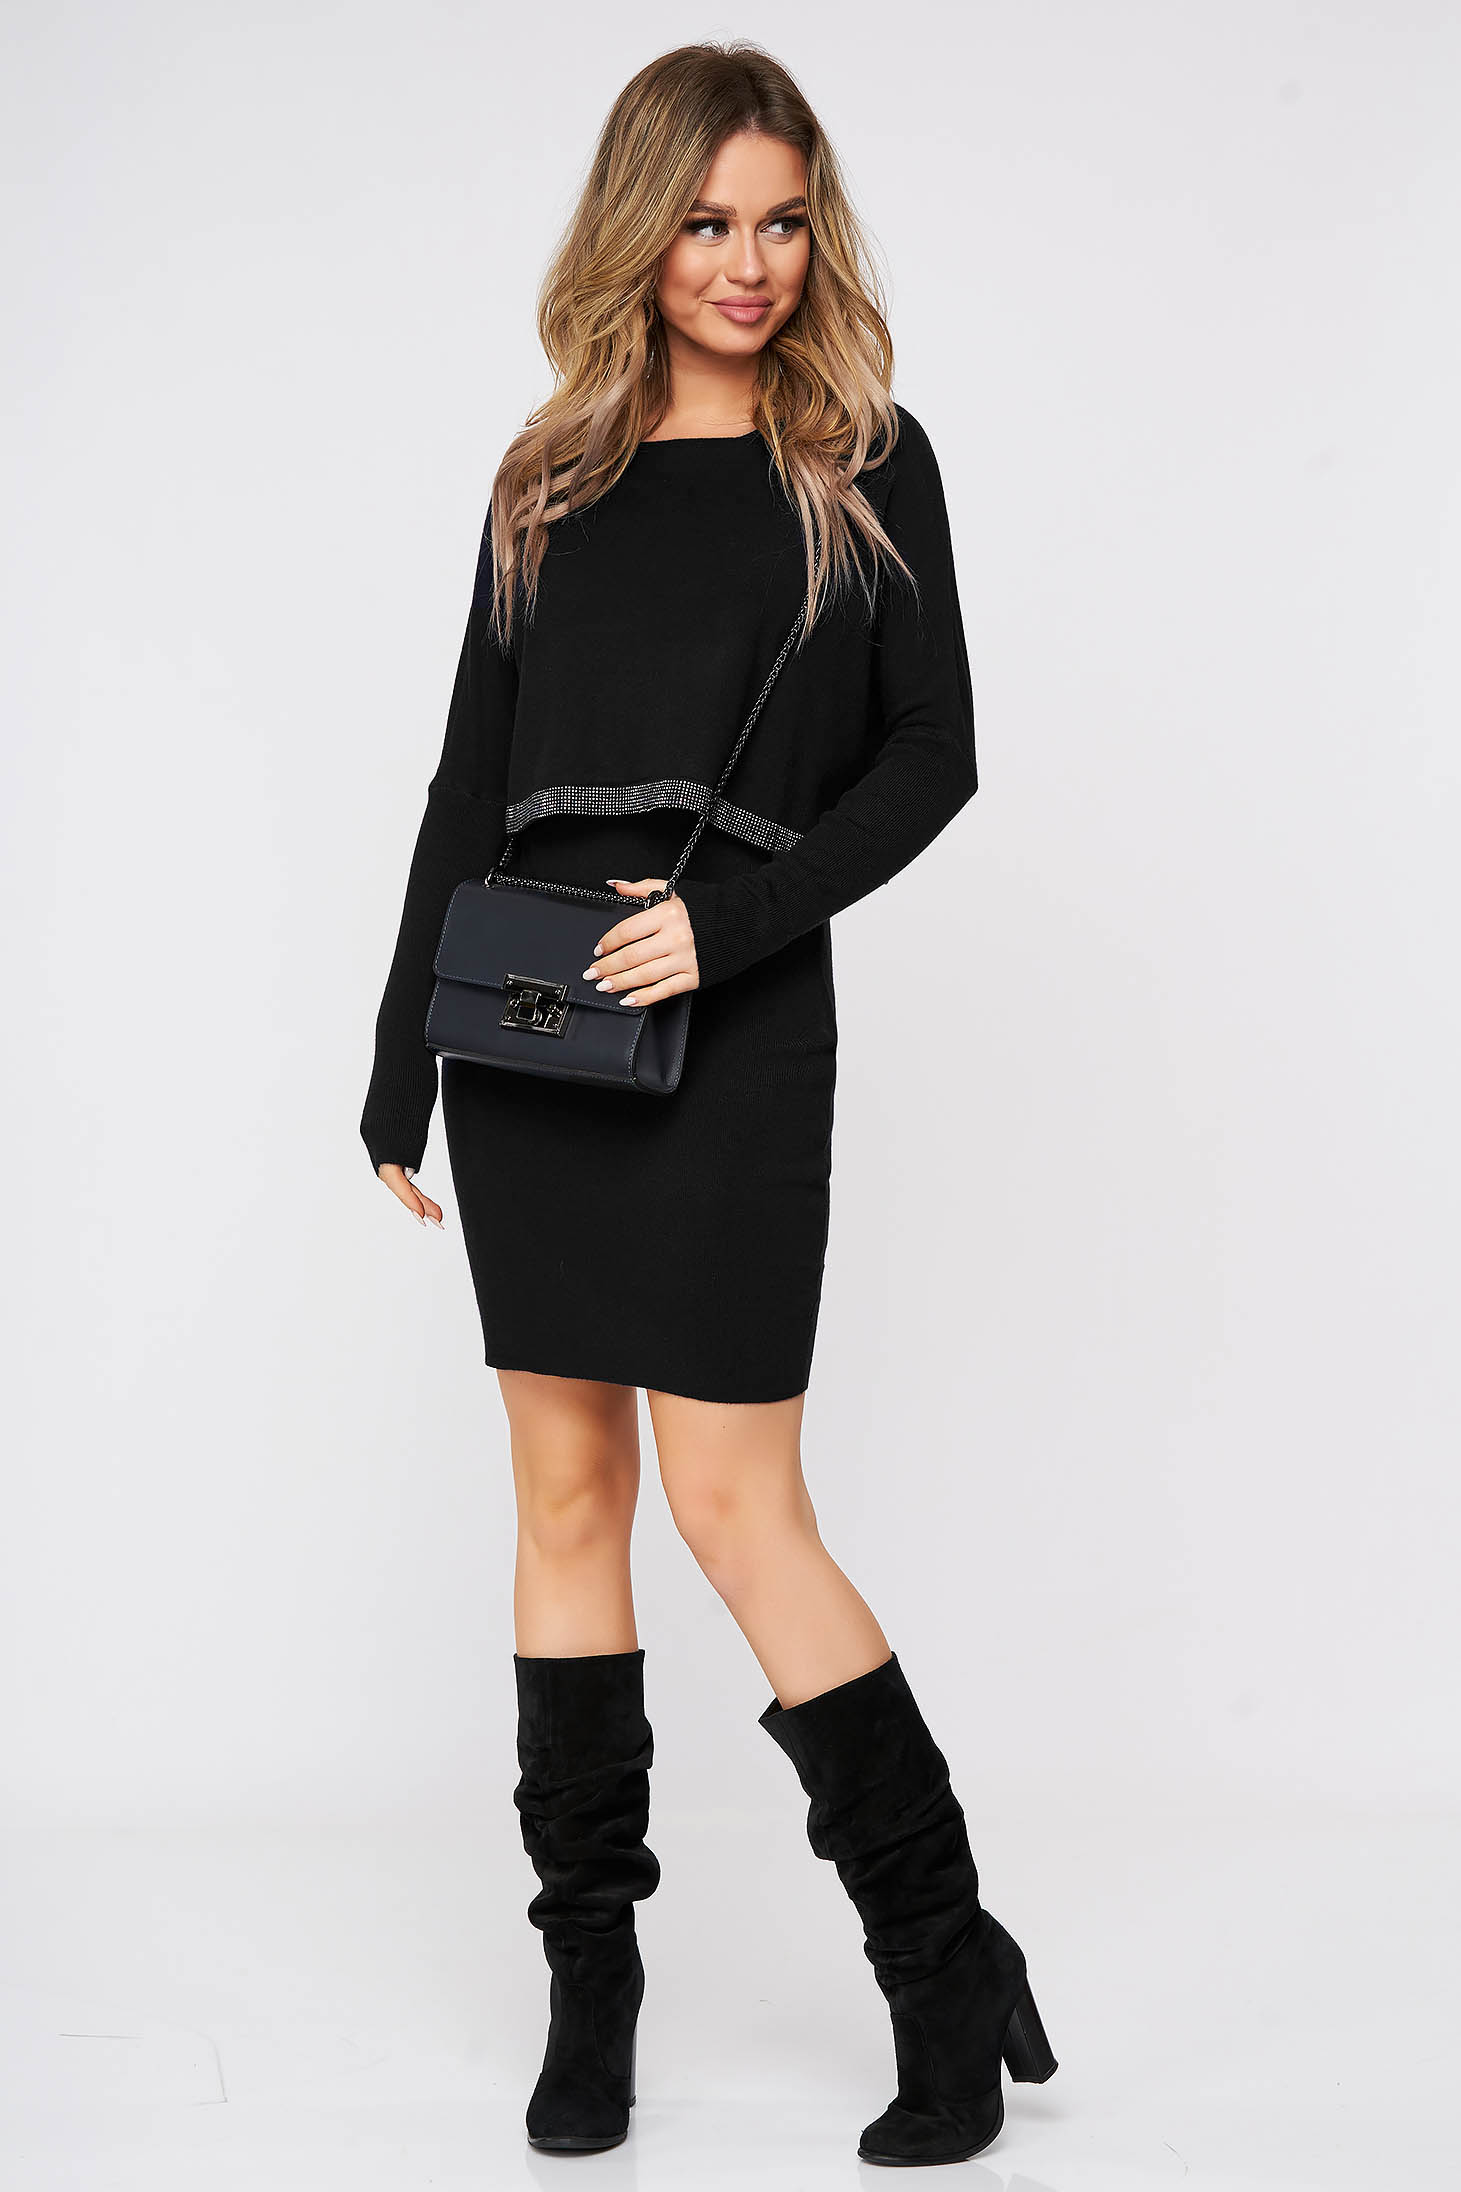 Black dress with crystal embellished details from soft fabric knitted